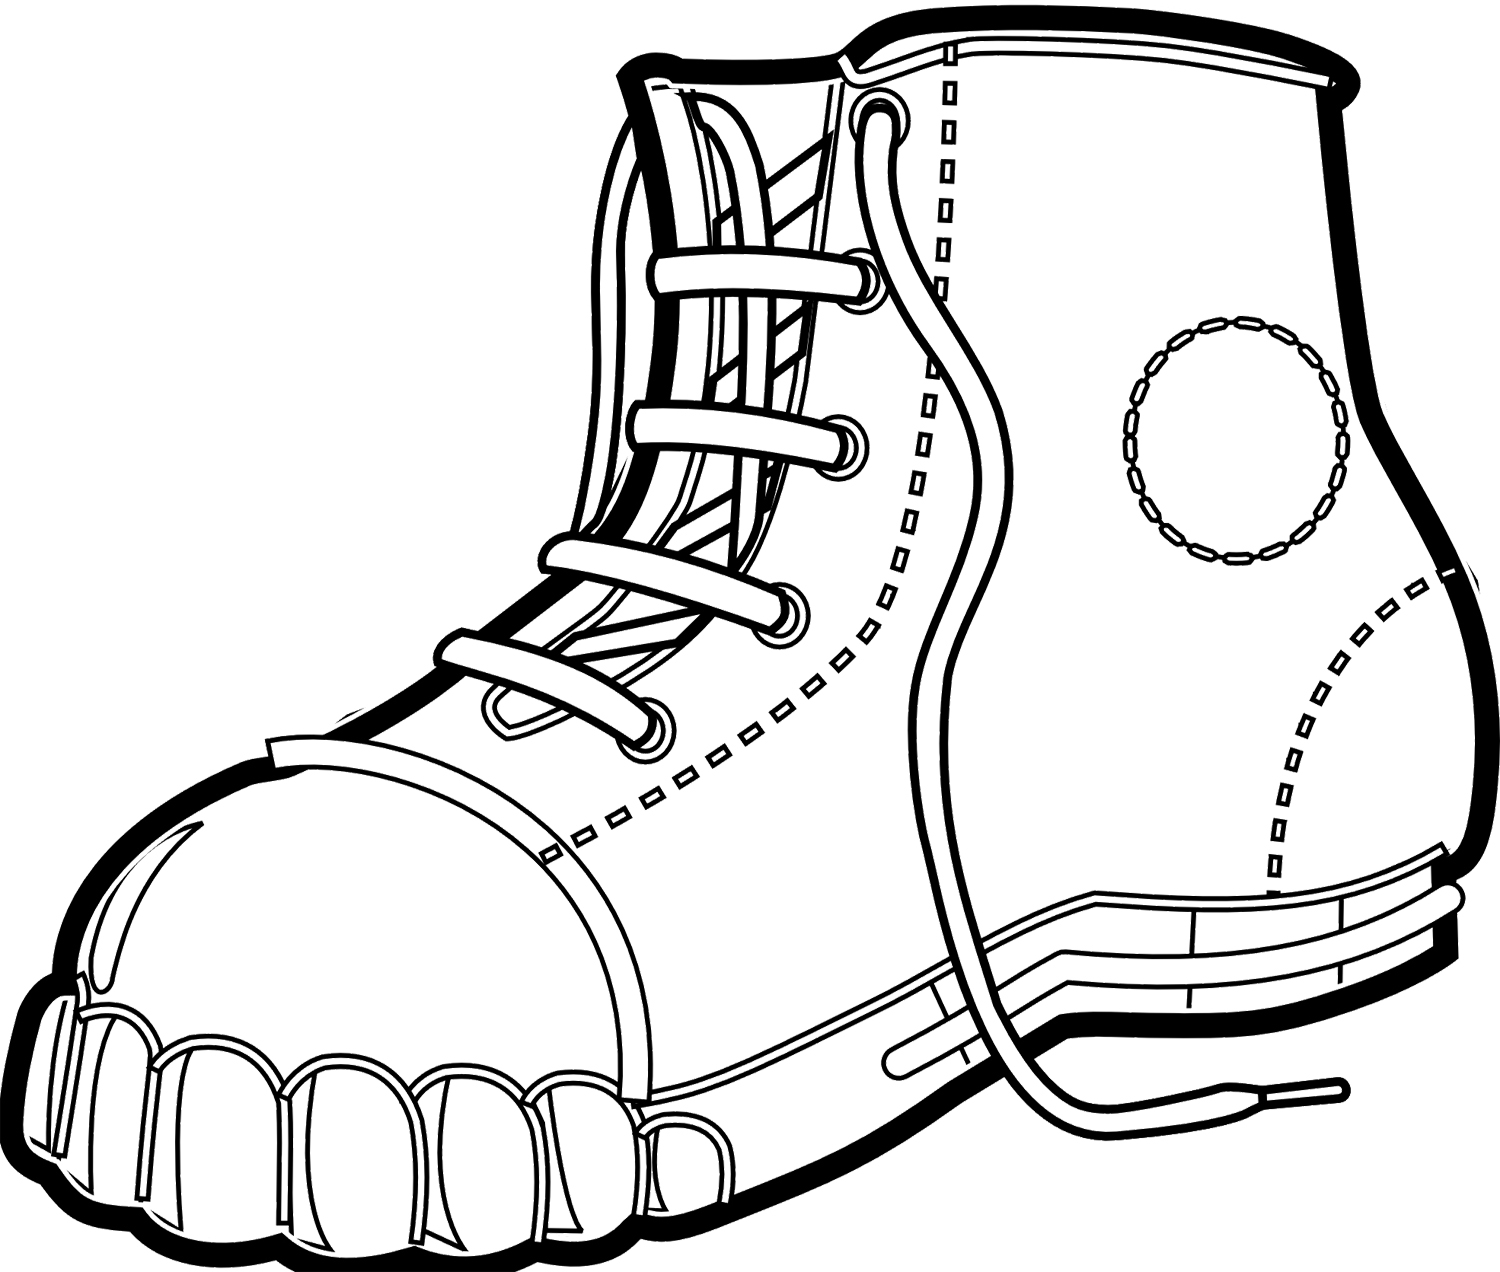 printable cowboy boots coloring pages - photo#23